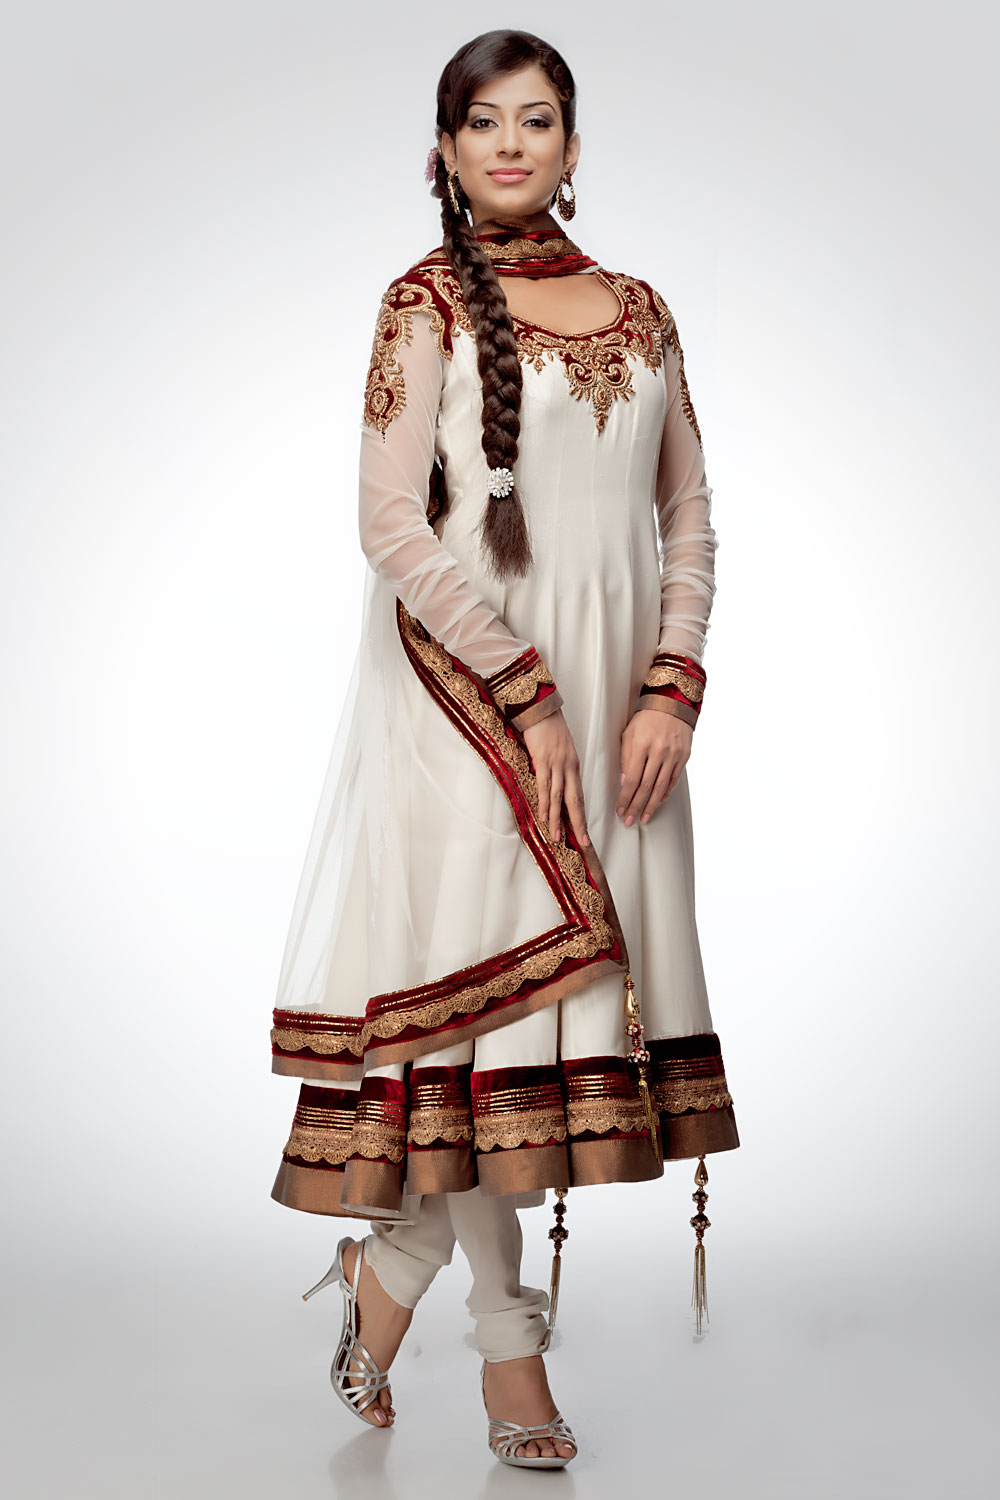 Fashion World Latest Fashion Desi Girls Modern Dresses Fashion Styles